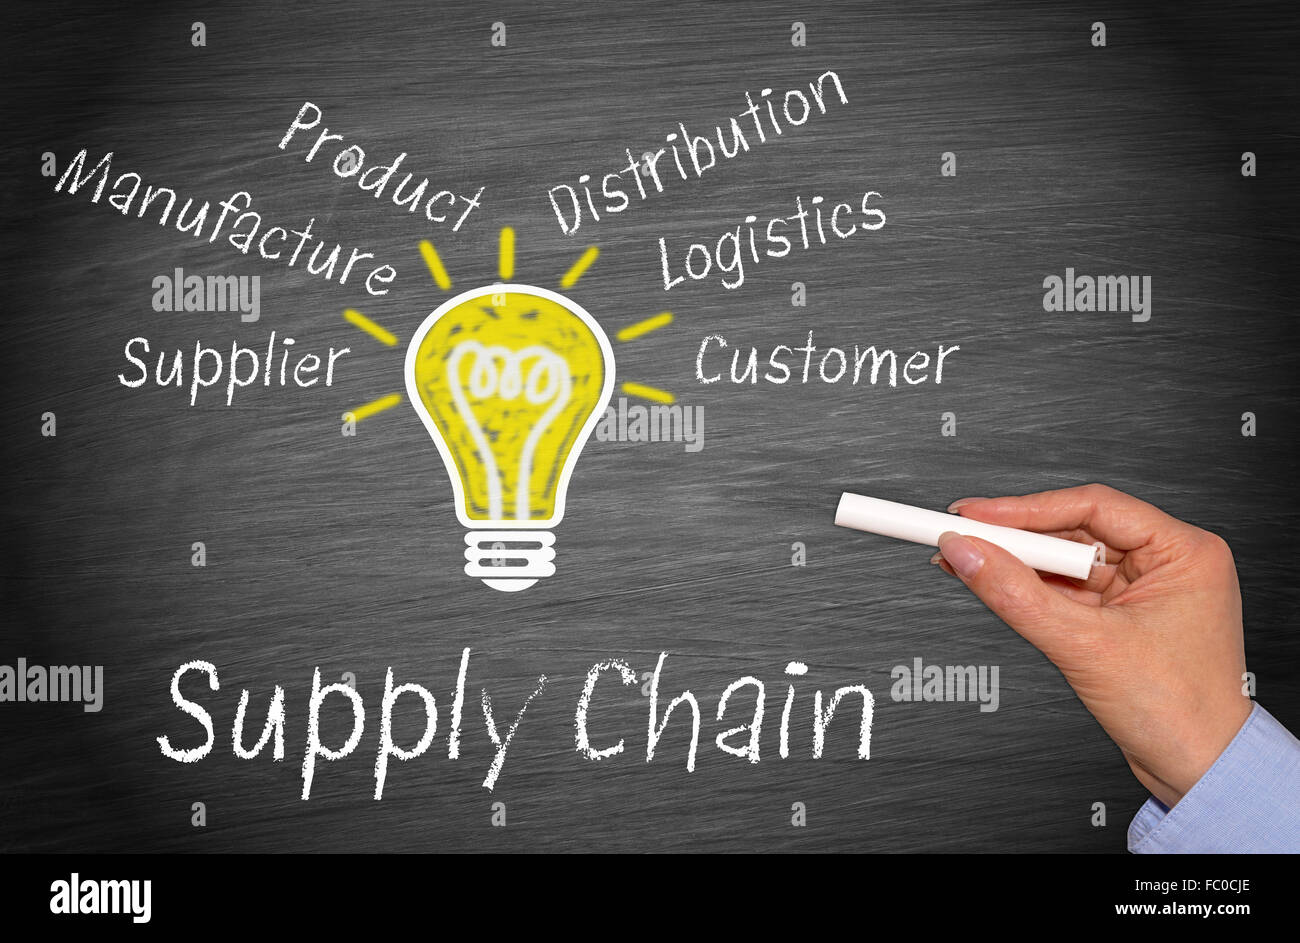 Supply Chain - Business Concept Stock Photo